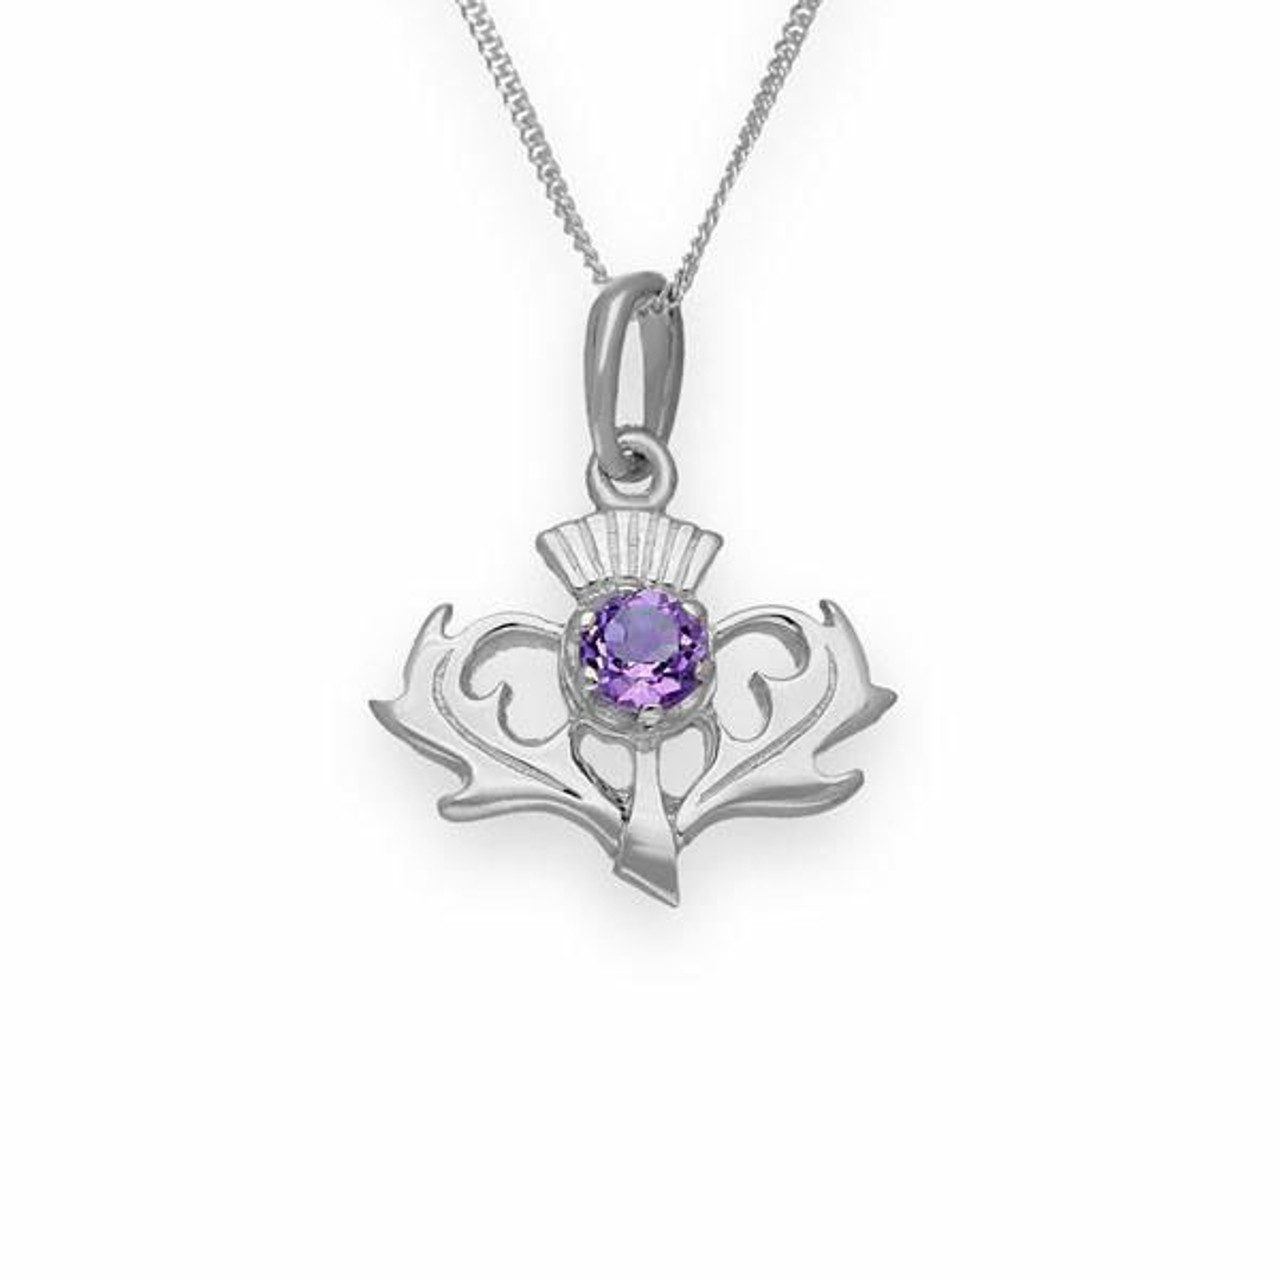 Thistle Pendant Necklace with Amethyst